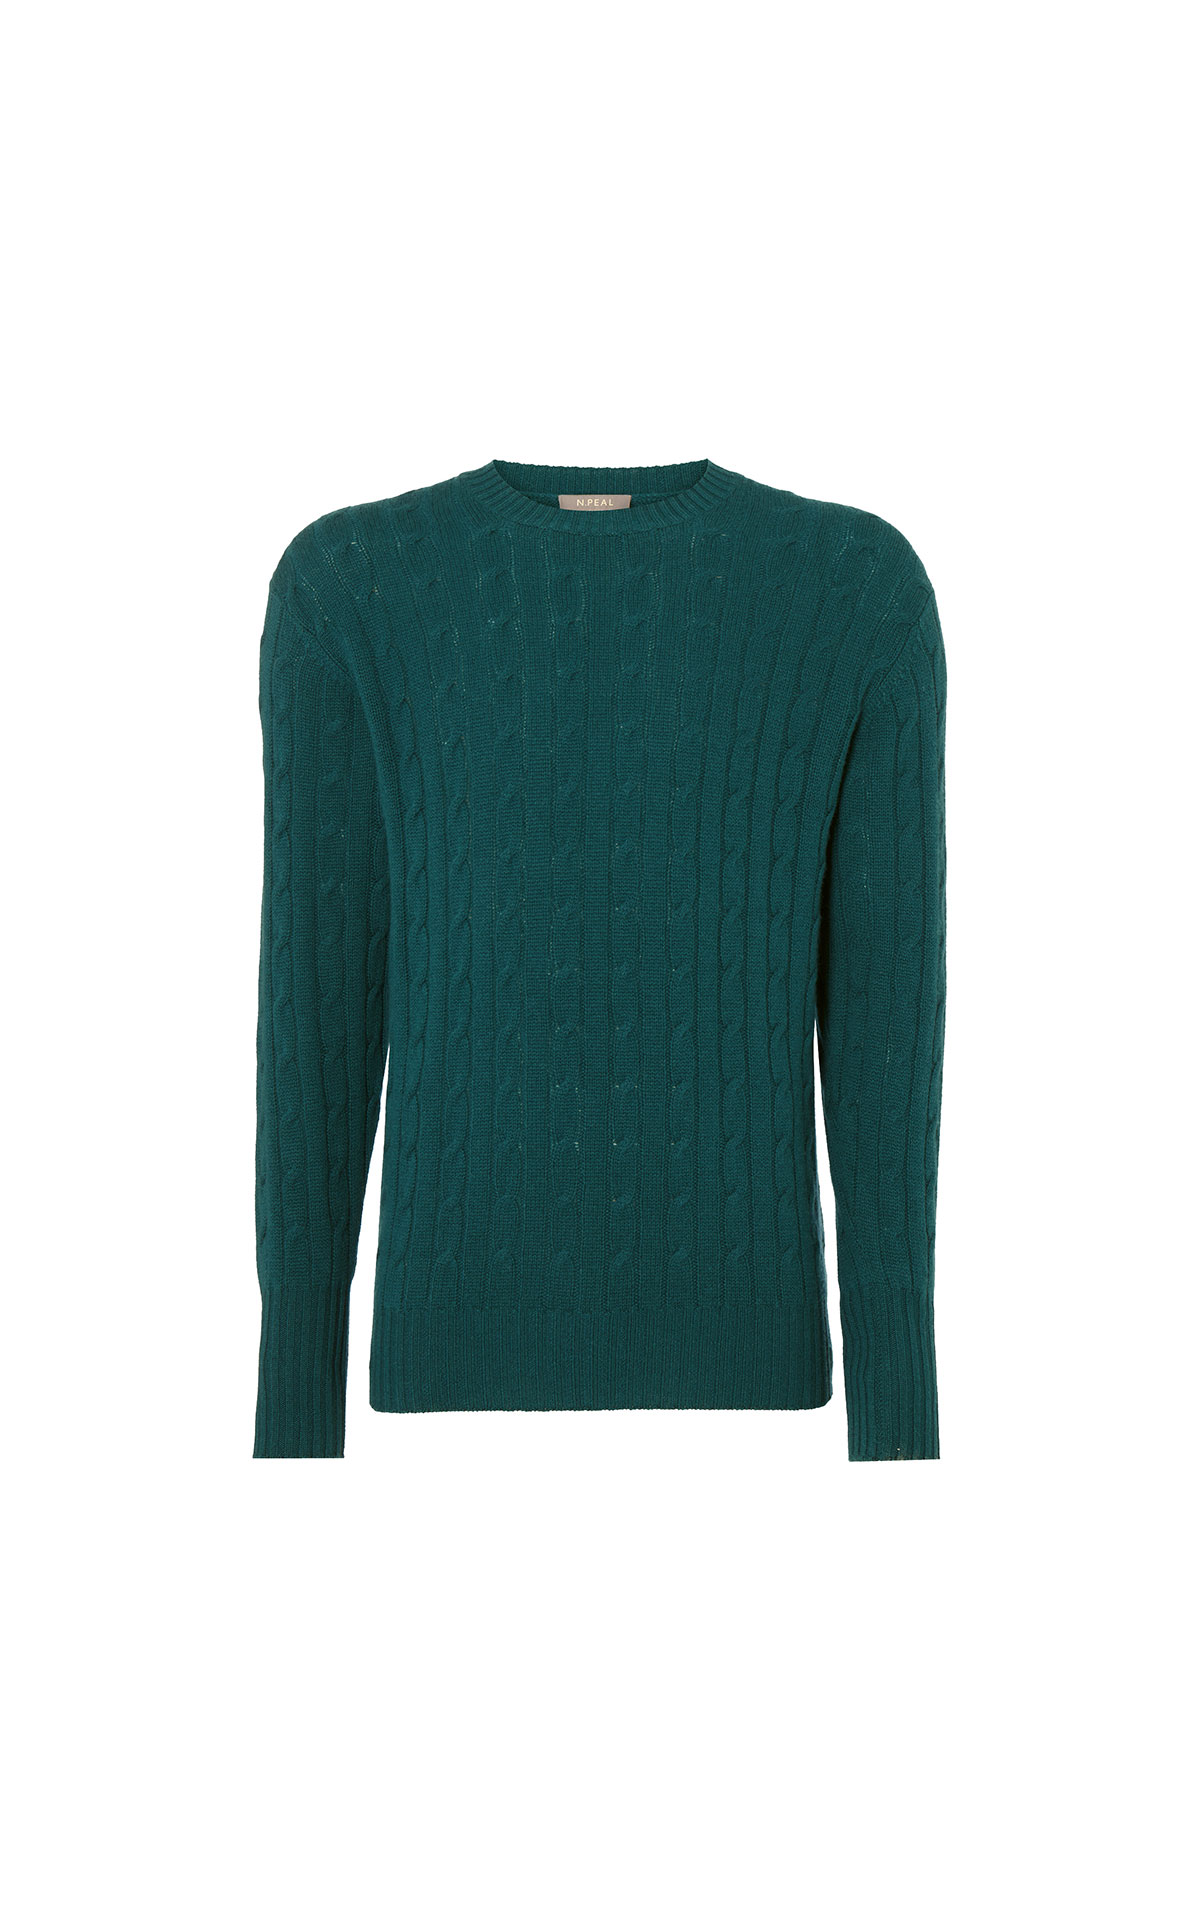 N.Peal The Thames Cable Round Neck from Bicester Village